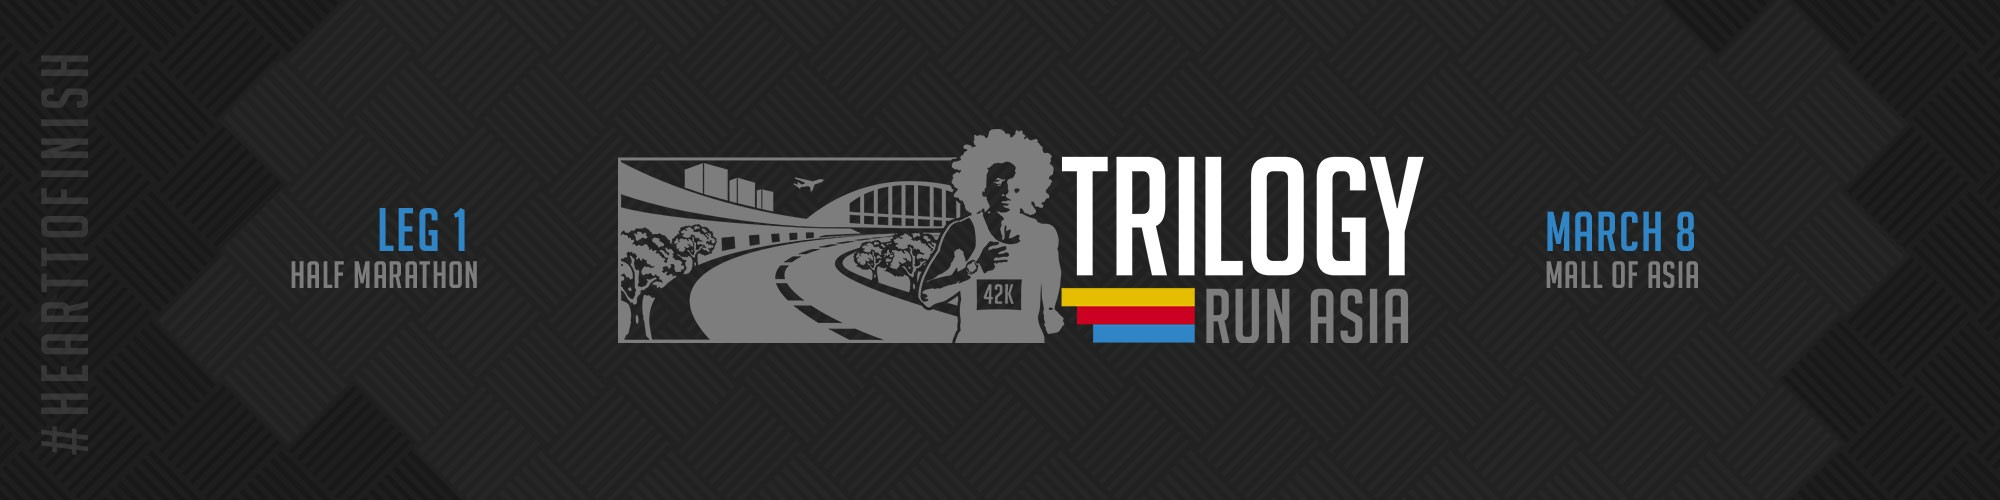 TRILOGY RUN ASIA 2020 Leg 1